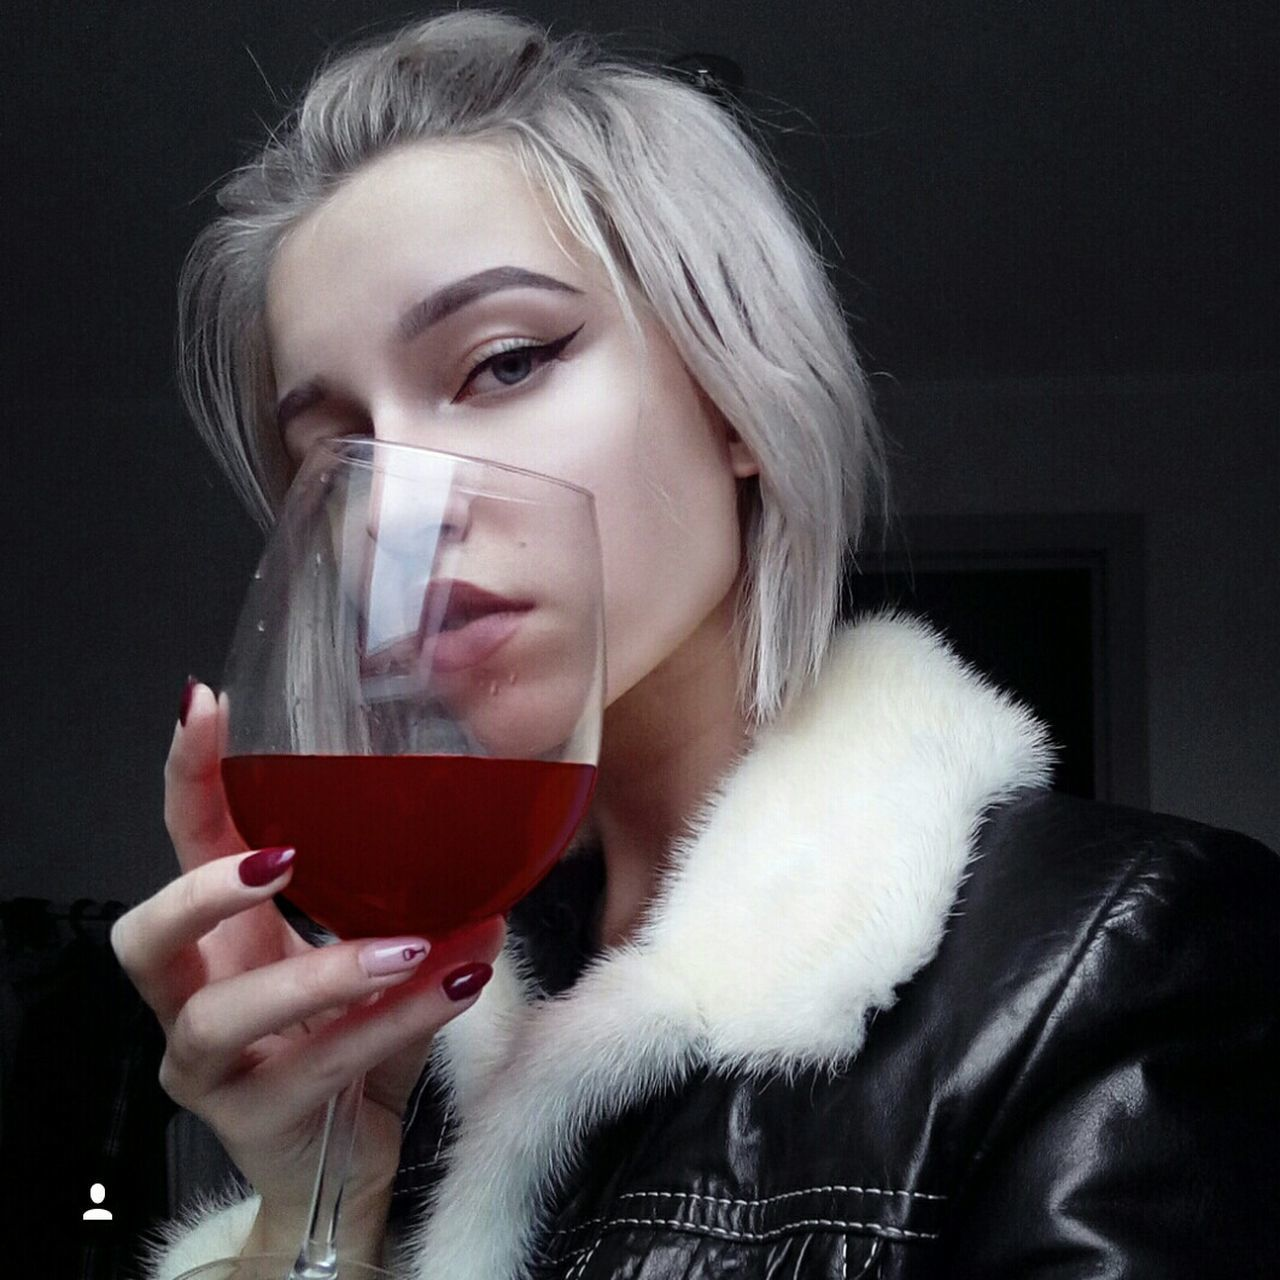 wineglass, young adult, drinking, real people, one person, drink, front view, young women, wine, lifestyles, red wine, leisure activity, holding, looking at camera, indoors, drinking glass, close-up, portrait, beautiful woman, alcohol, black background, blond hair, warm clothing, day, people